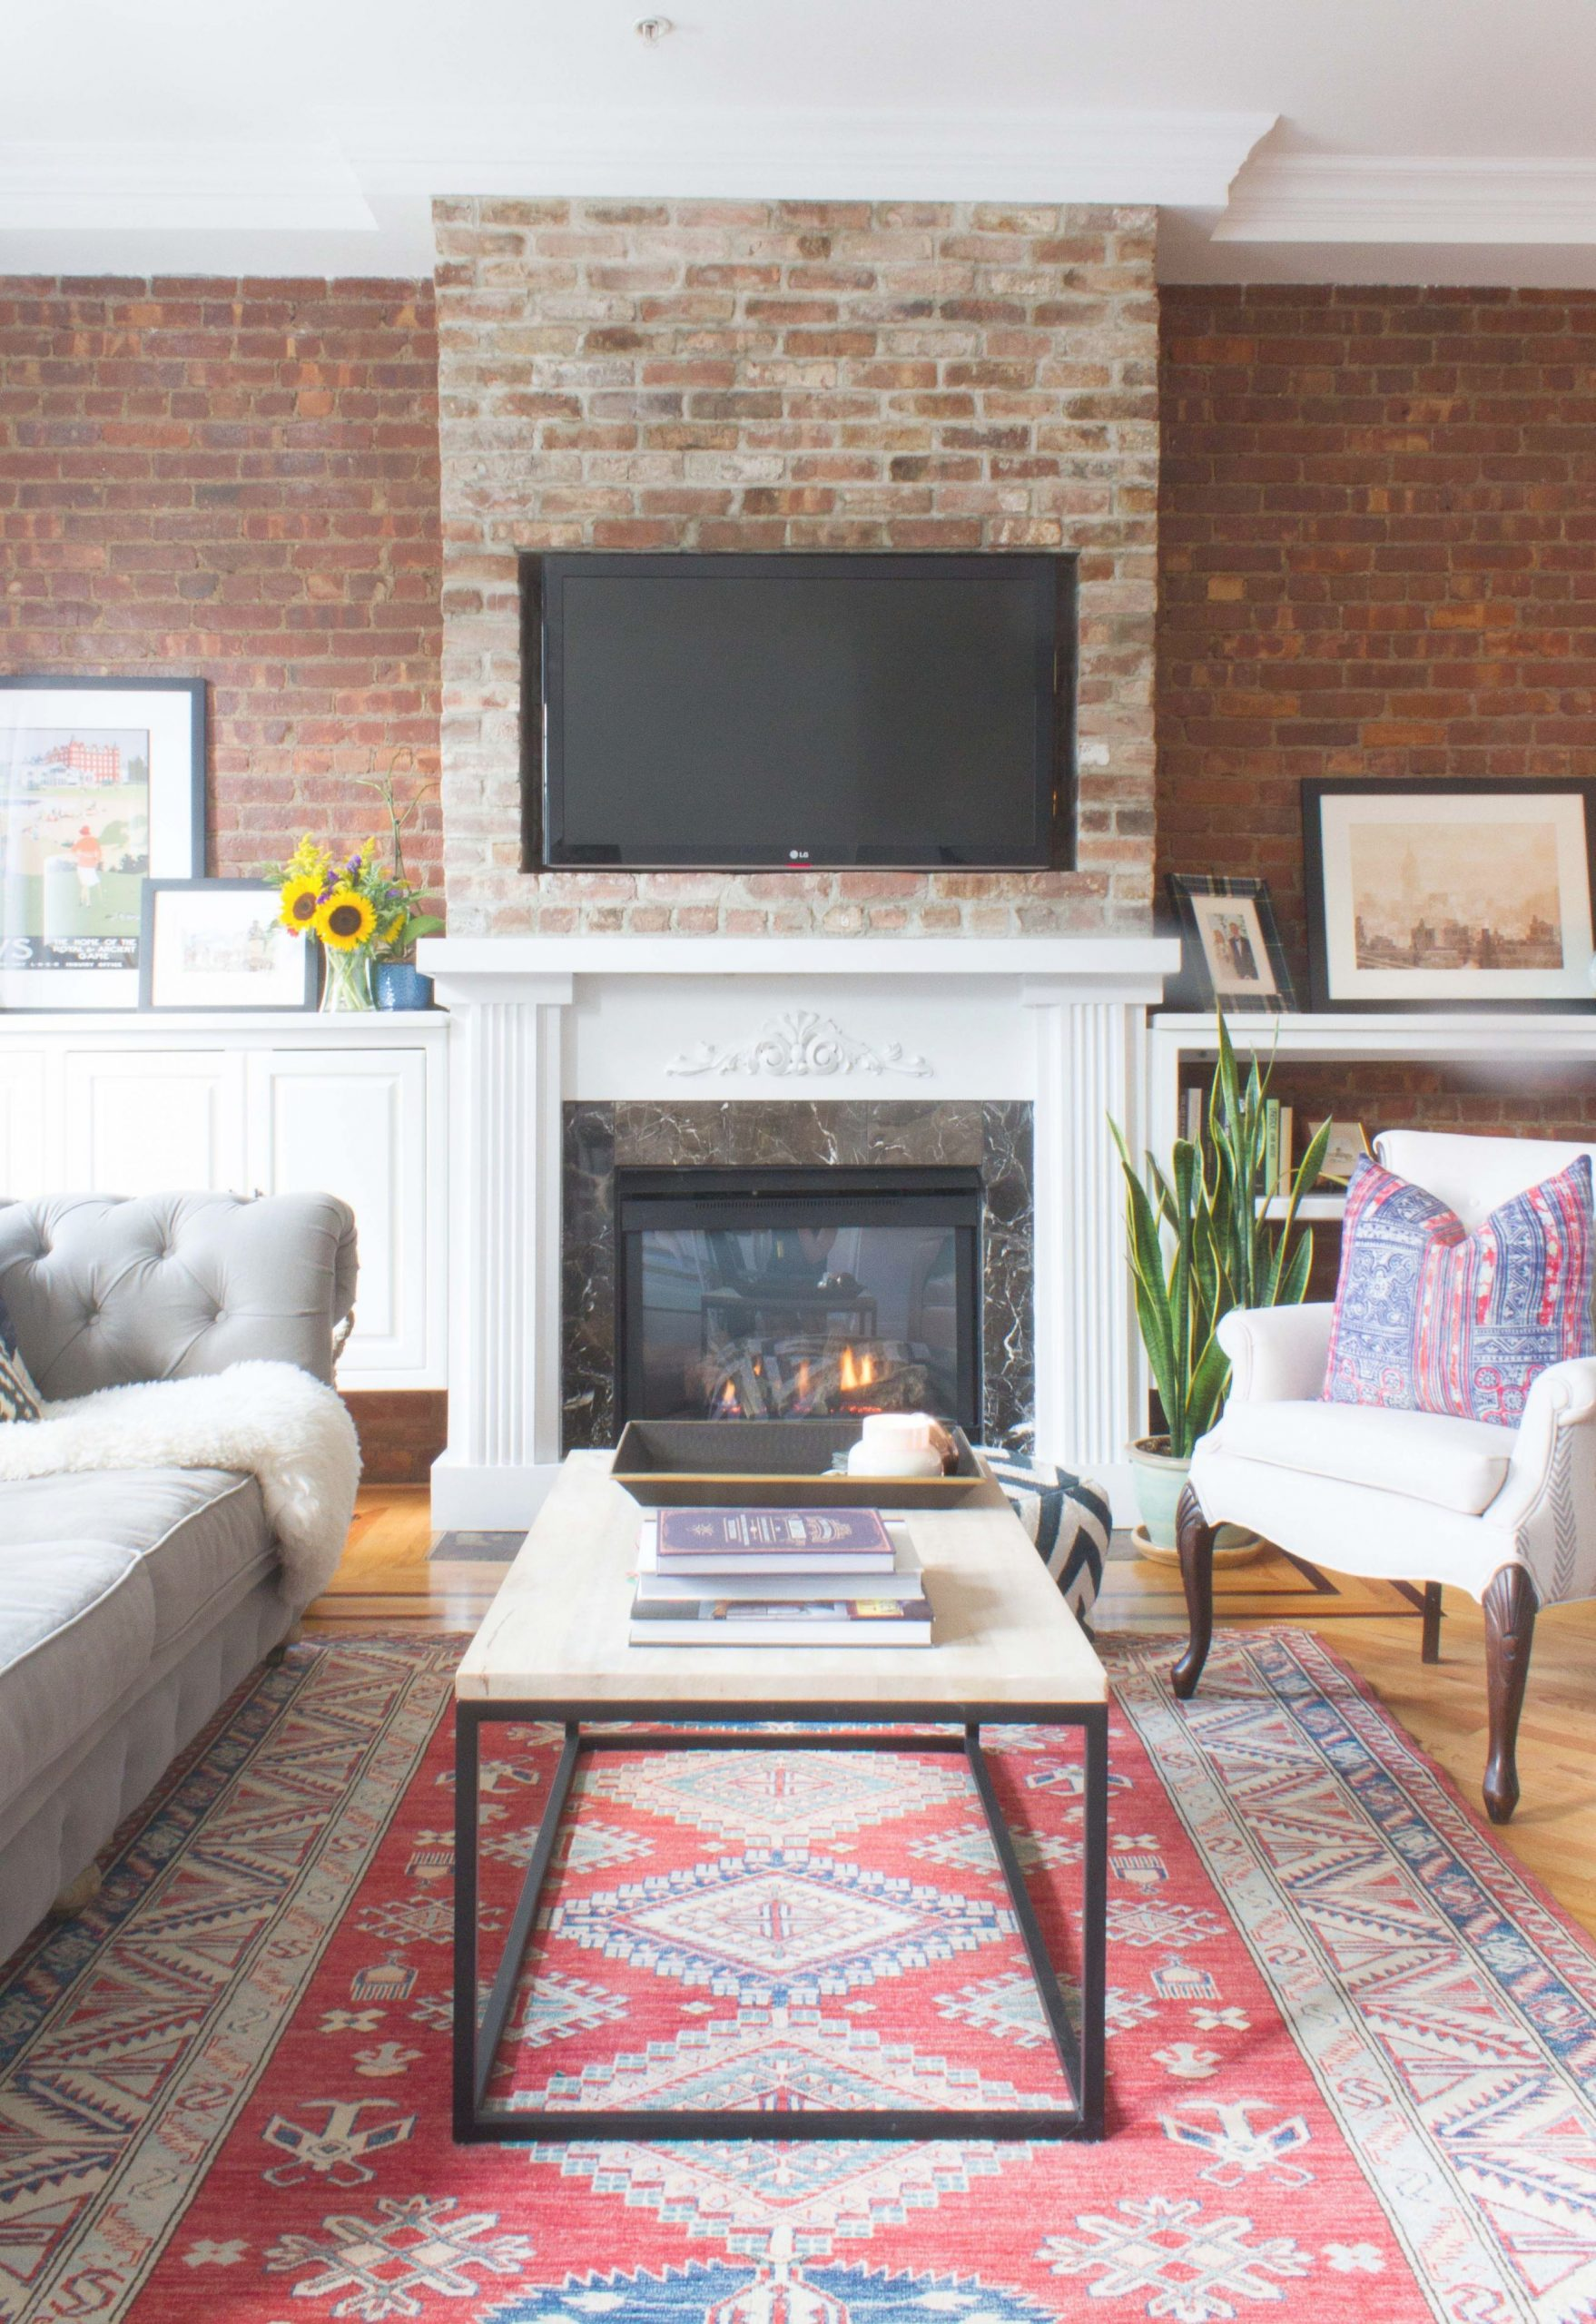 53 Best Living Room Ideas – Stylish Living Room Decorating with Lovely Home Decorating Ideas Small Living Room